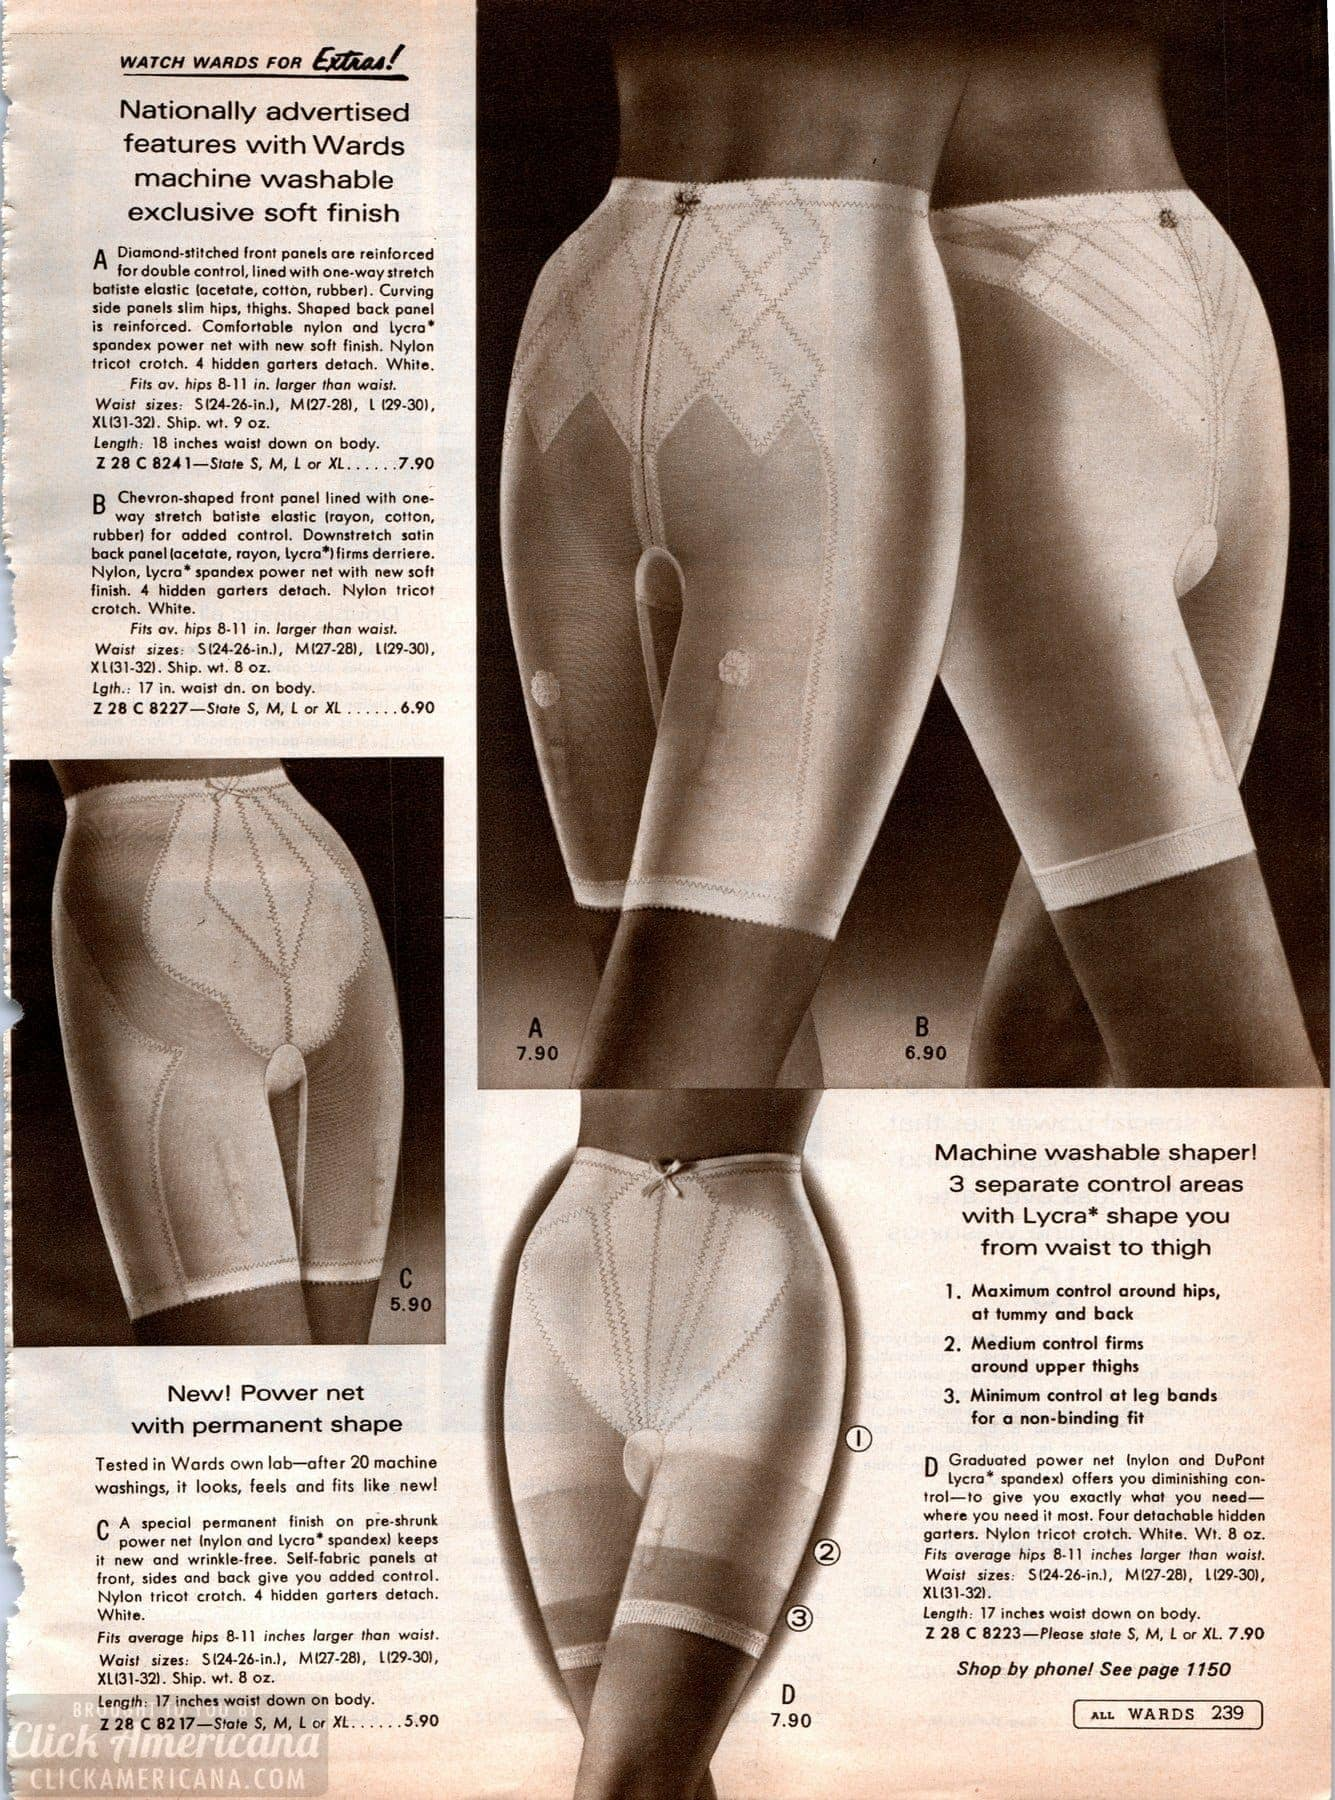 Vintage '60s lingerie - panty girdles from 1968 (6)